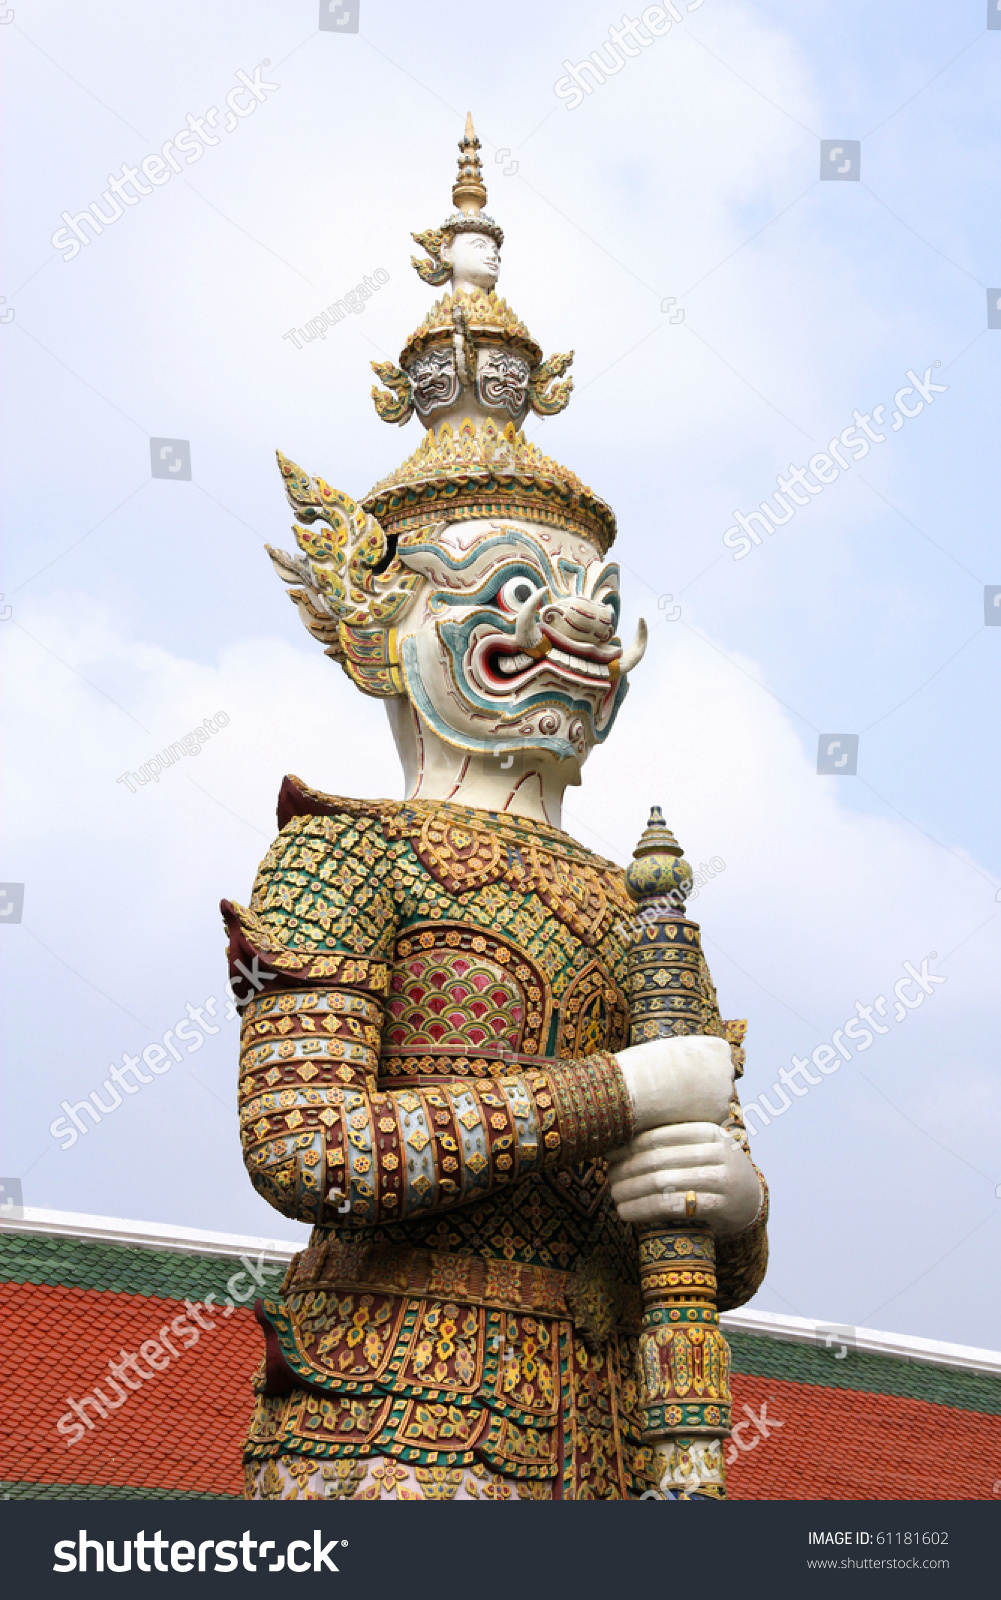 Thai Guard Statue - Beautiful Sculpture In The Royal Grand ...